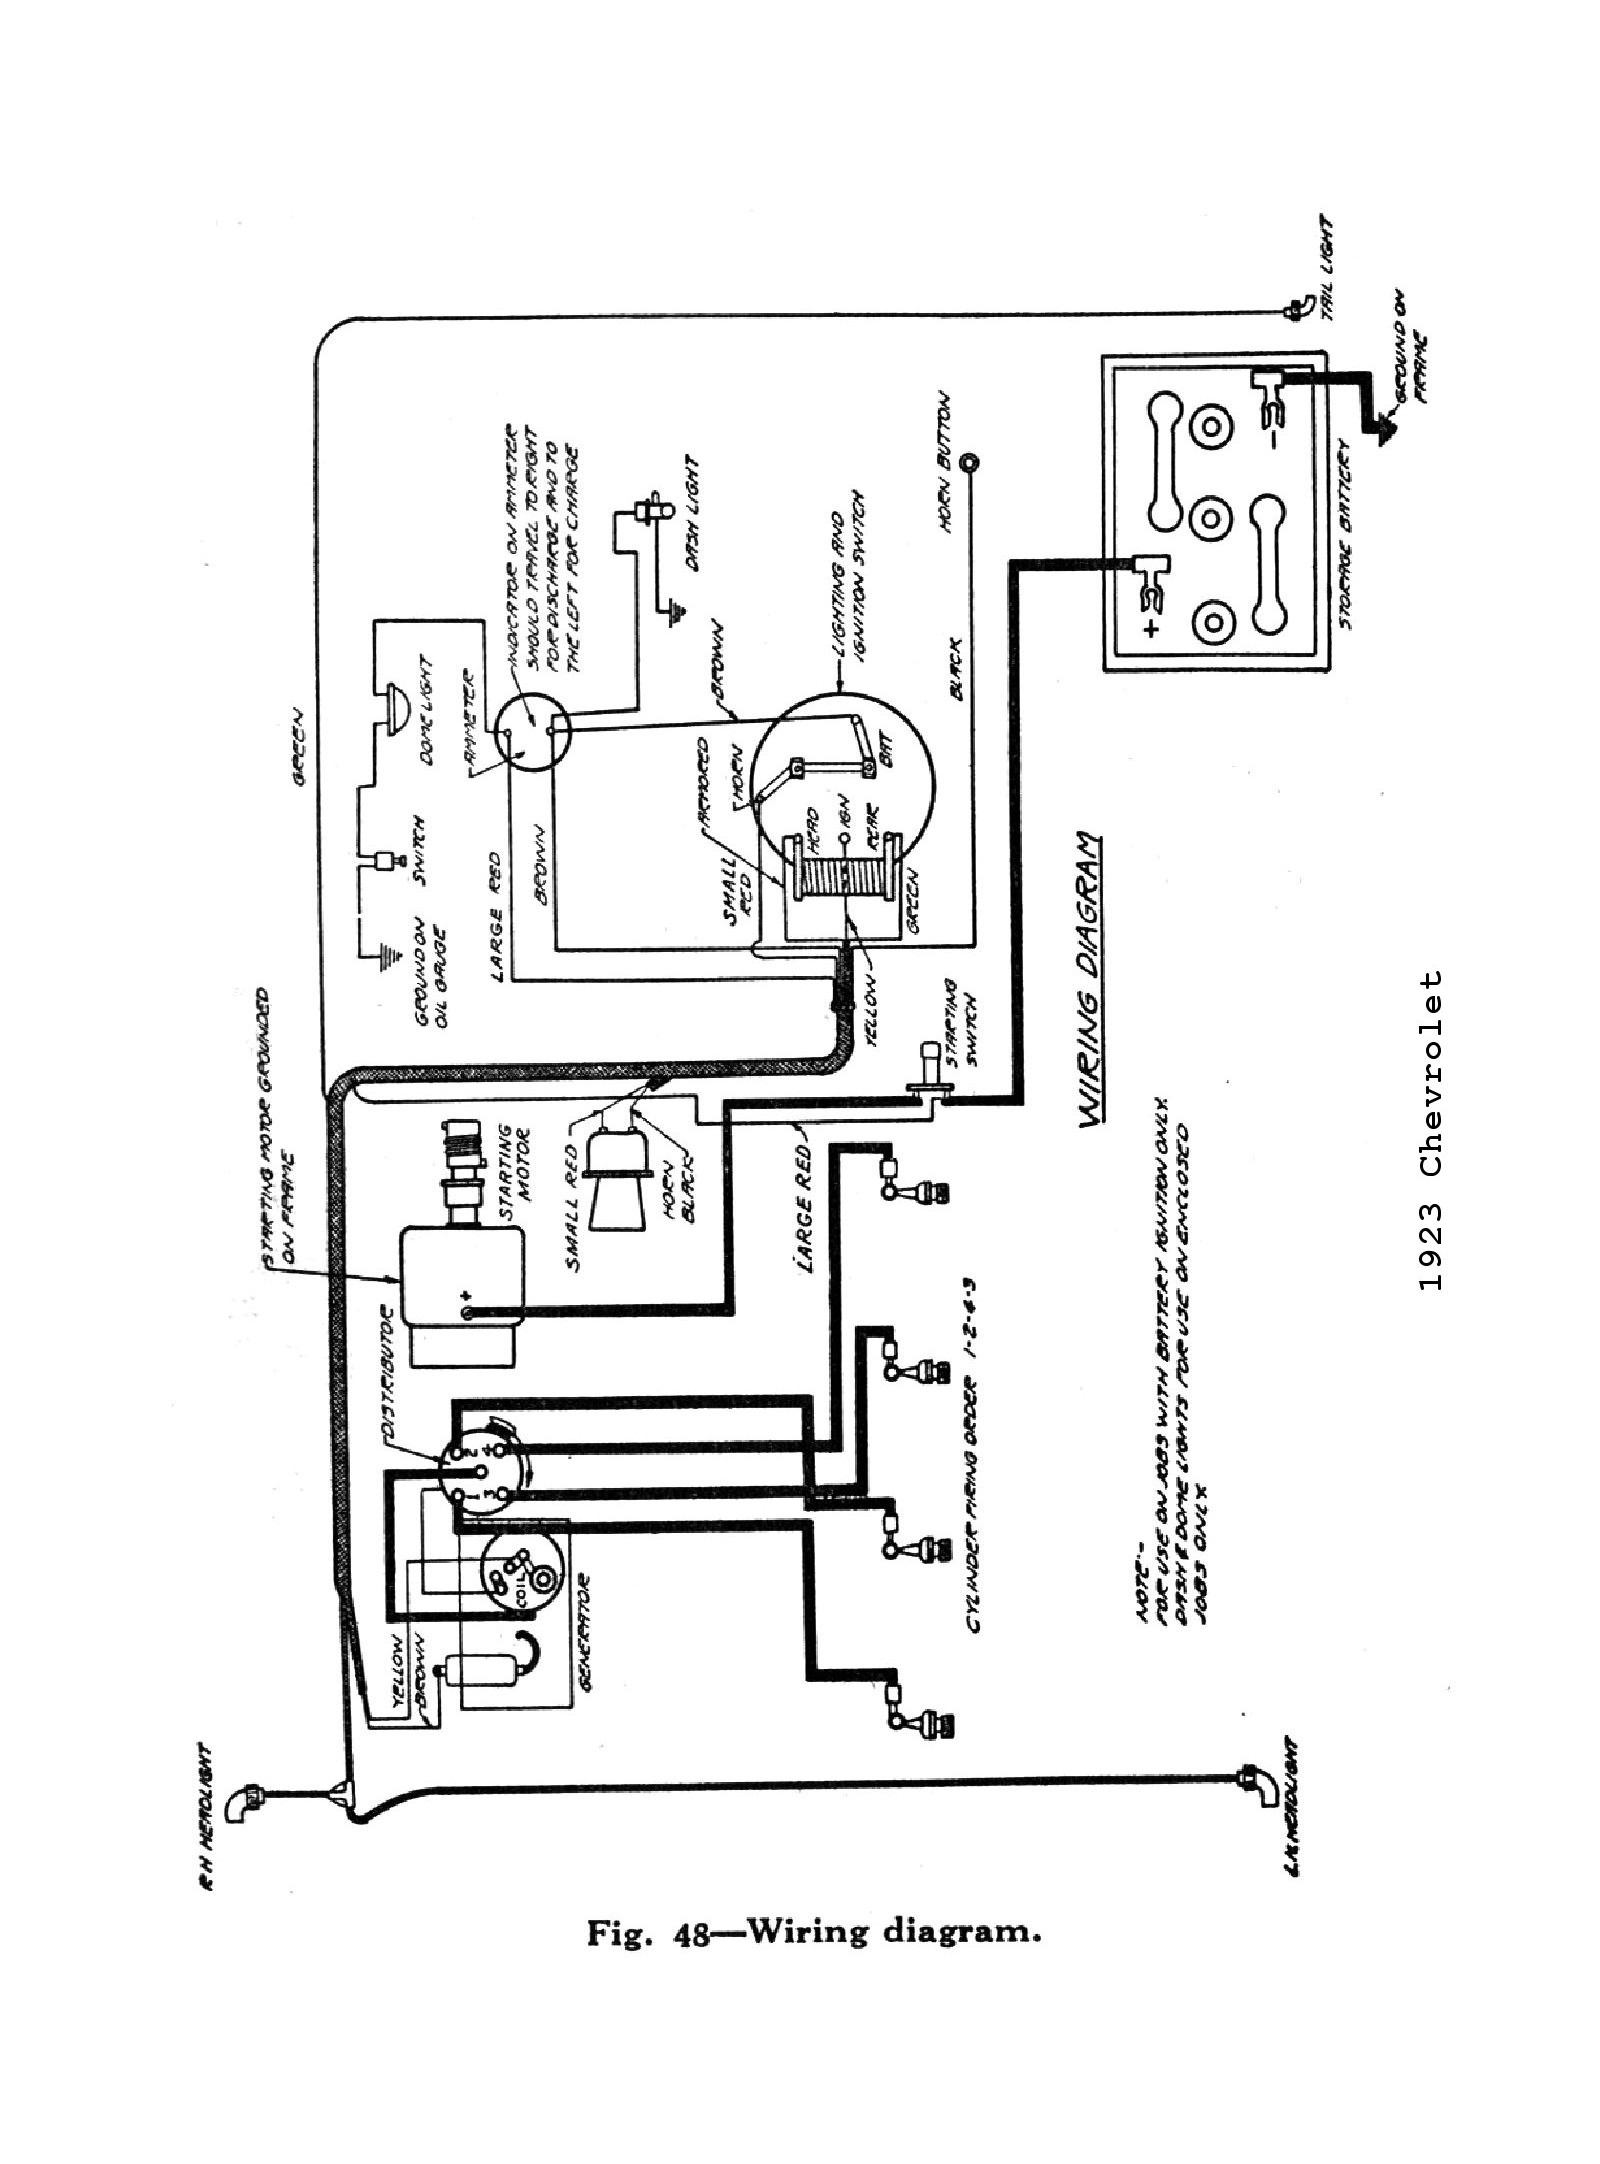 wiring diagram for 1940 chevy business coupe get free image aboutchevy wiring diagrams wiring diagram for 1940 chevy business coupe get free image about